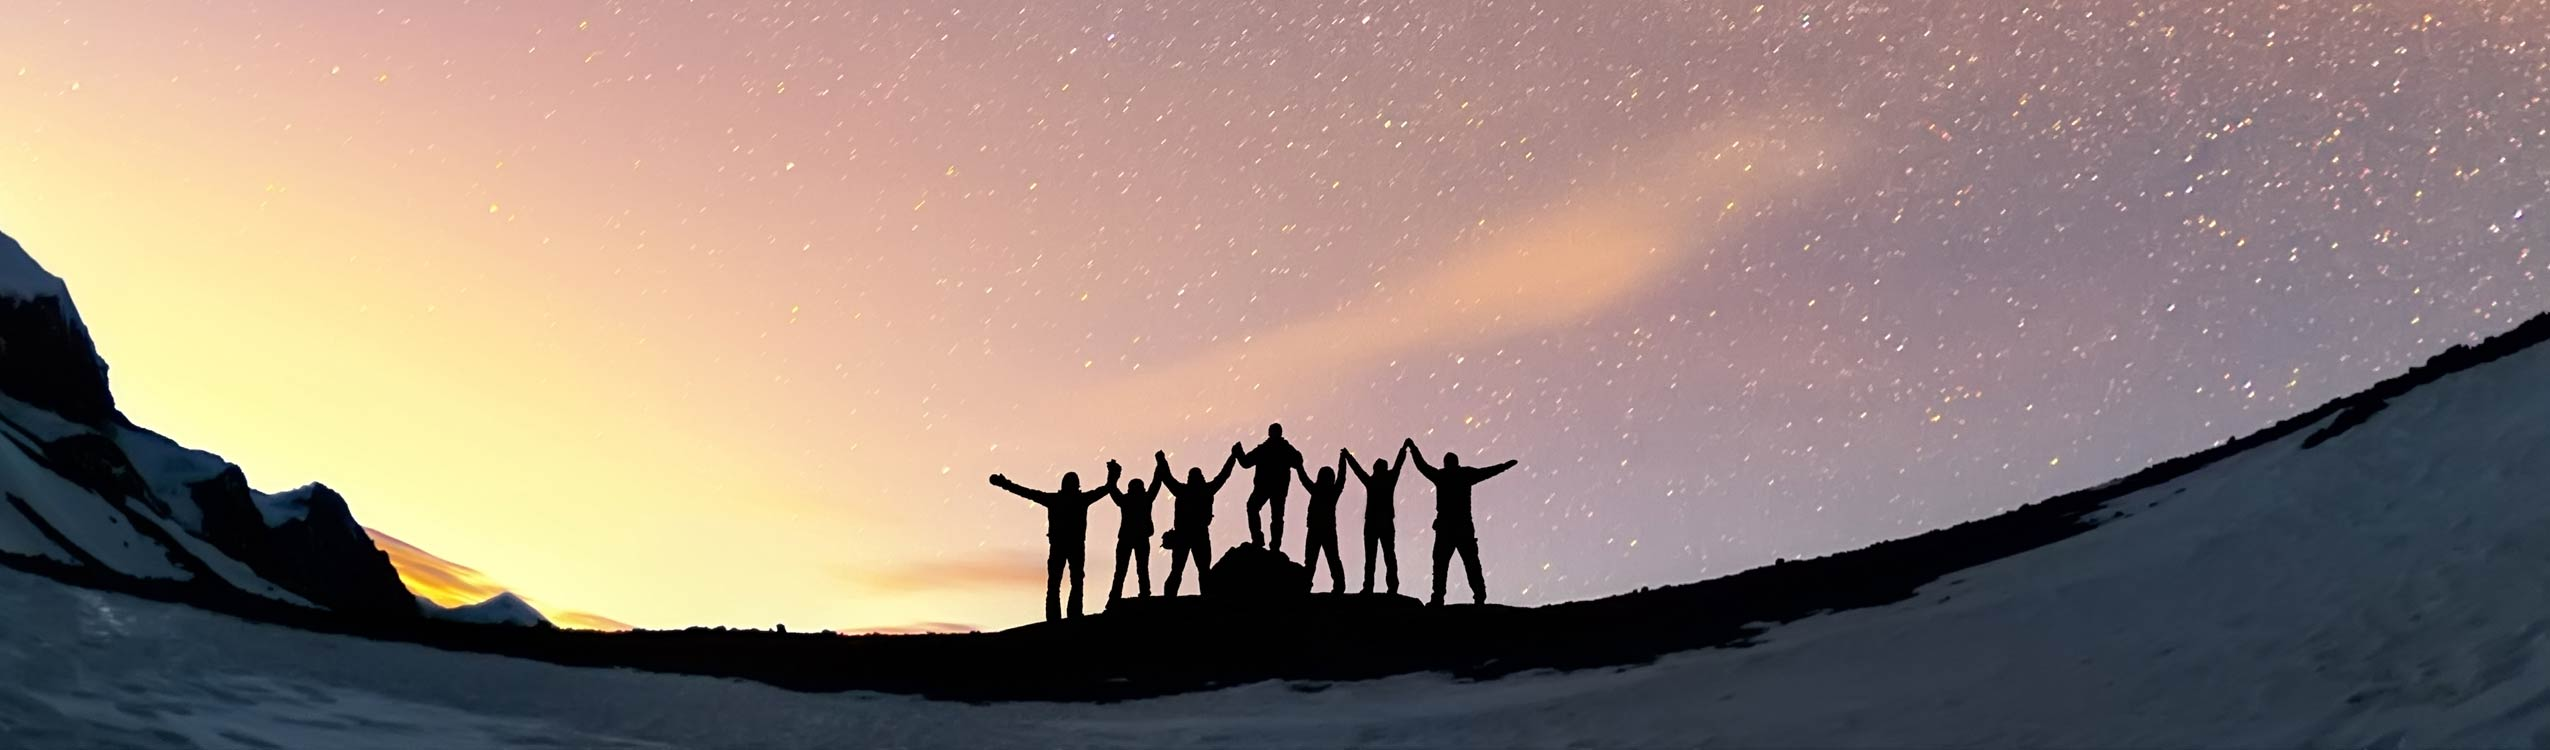 Facilitators of Communication and Sales training, teamwork and vision. A group of people are standing together holding hands against the Milky Way in the mountains.